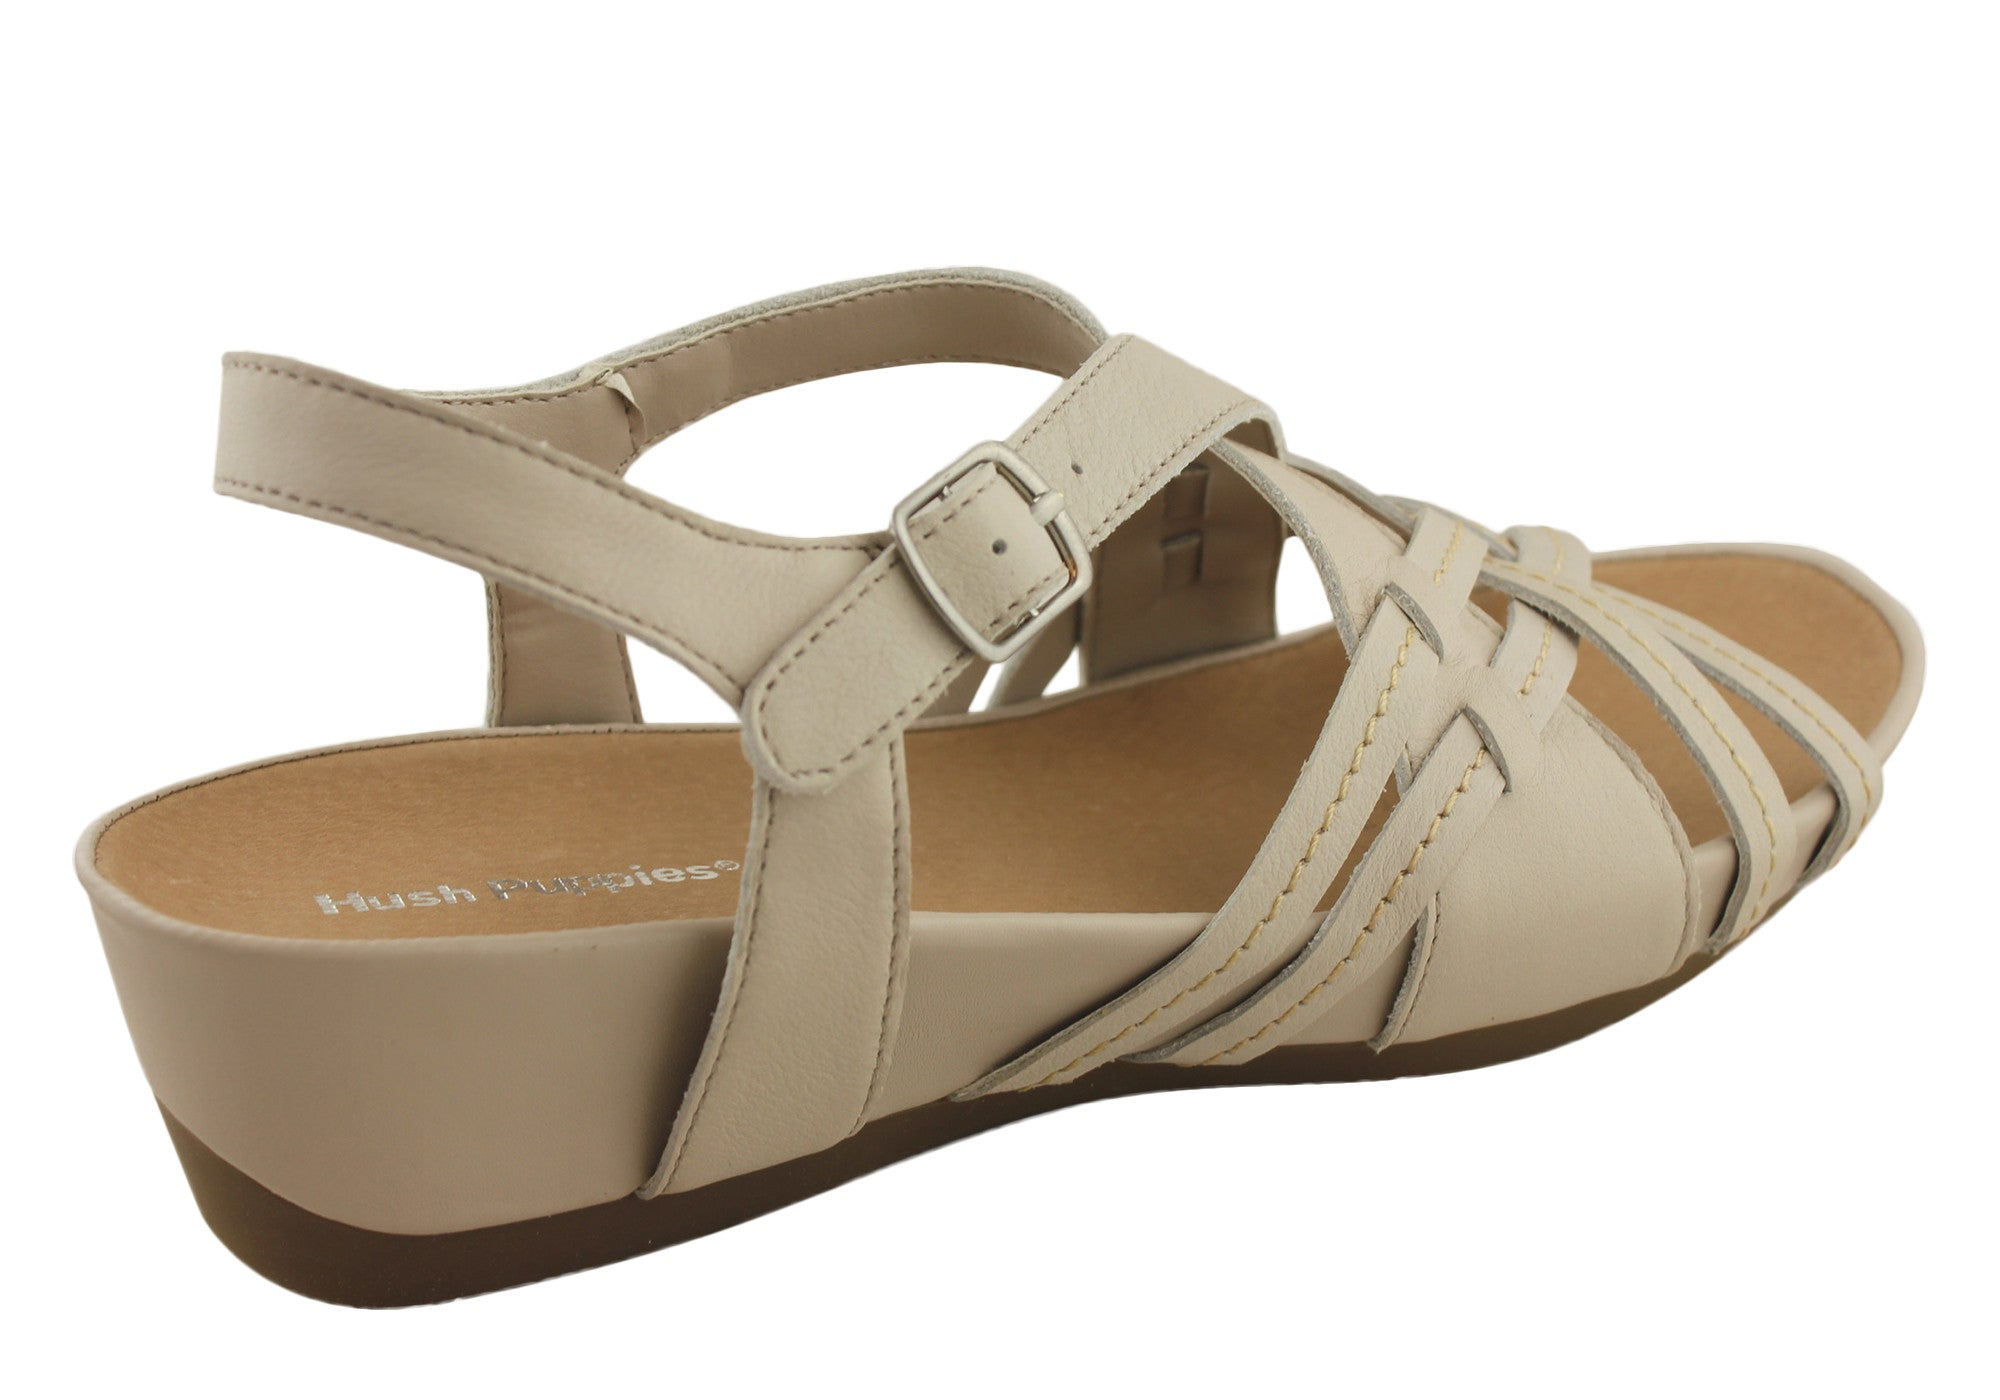 Hush Puppies Belina Womens Comfortable Leather Sandals